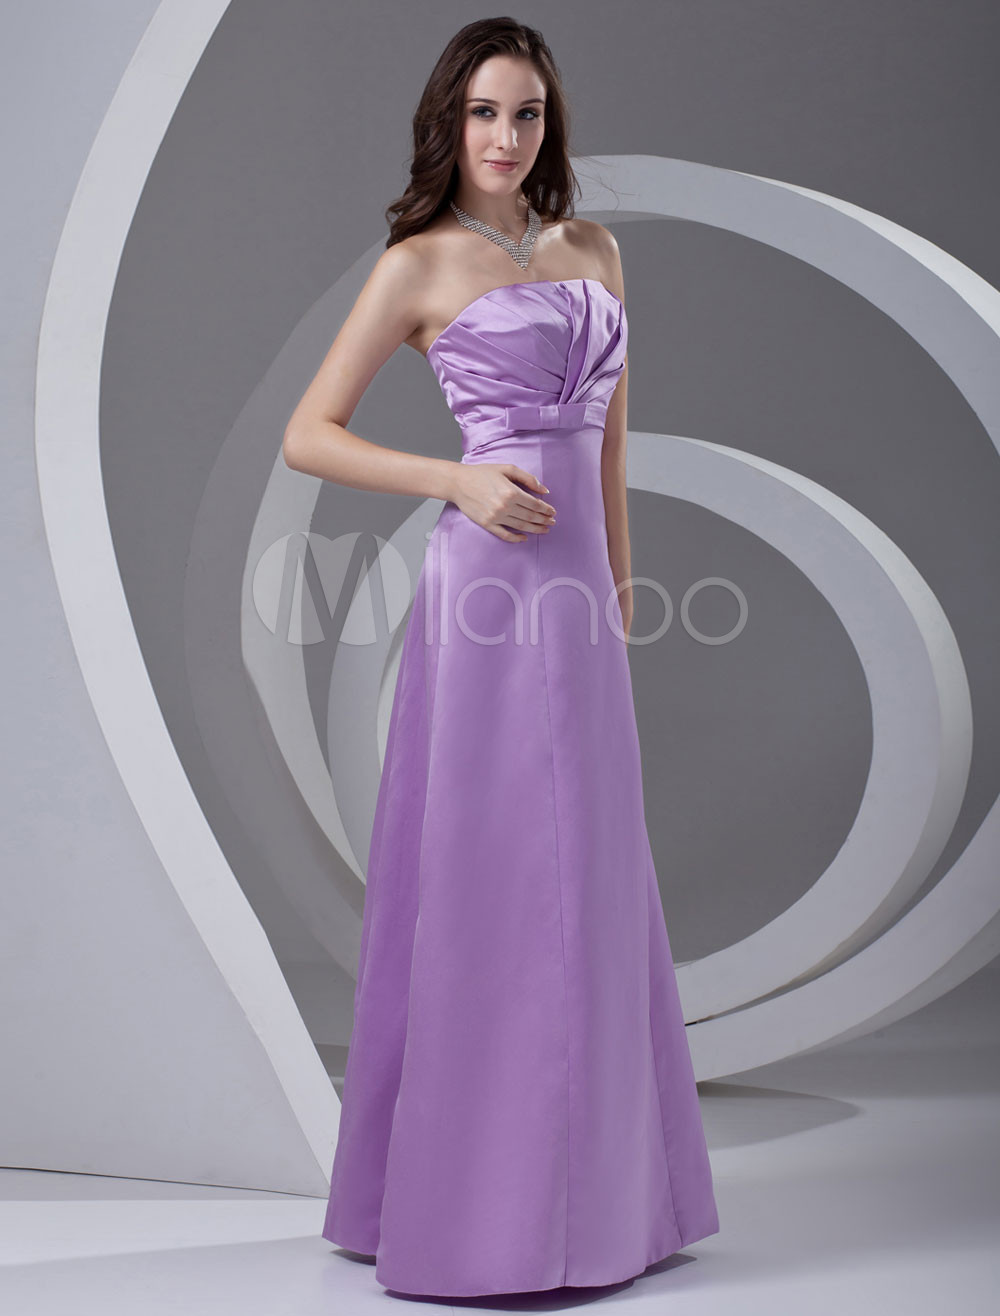 Sheath Lavender Satin Ruched Strapless Bridesmaid Dress